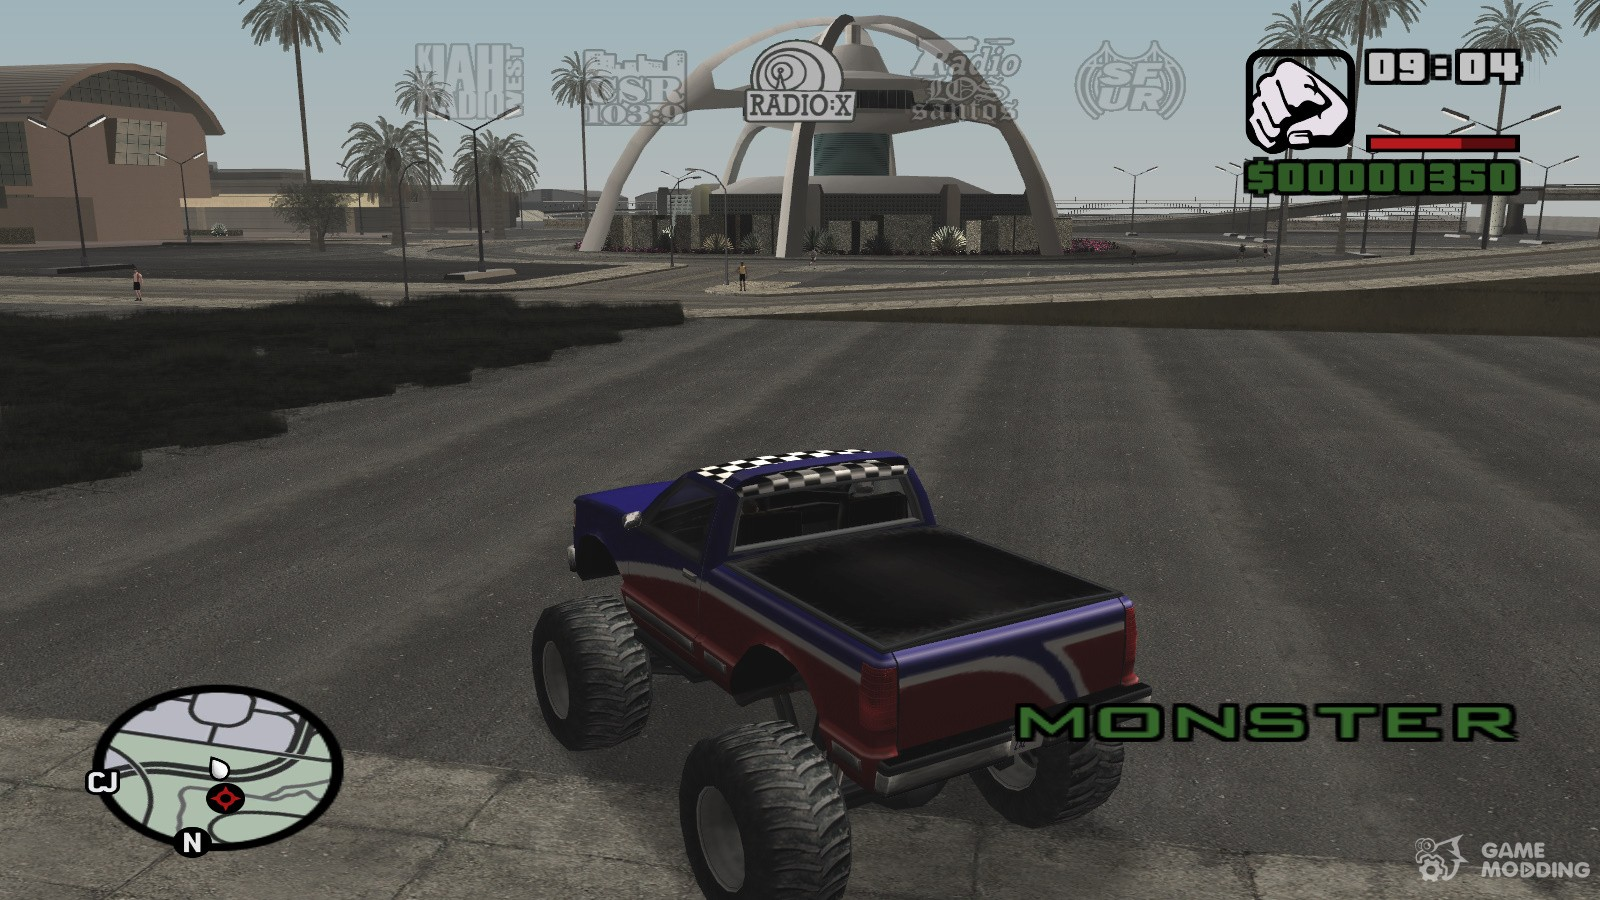 hq textures  plugins and graphics from gta iv for gta san andreas